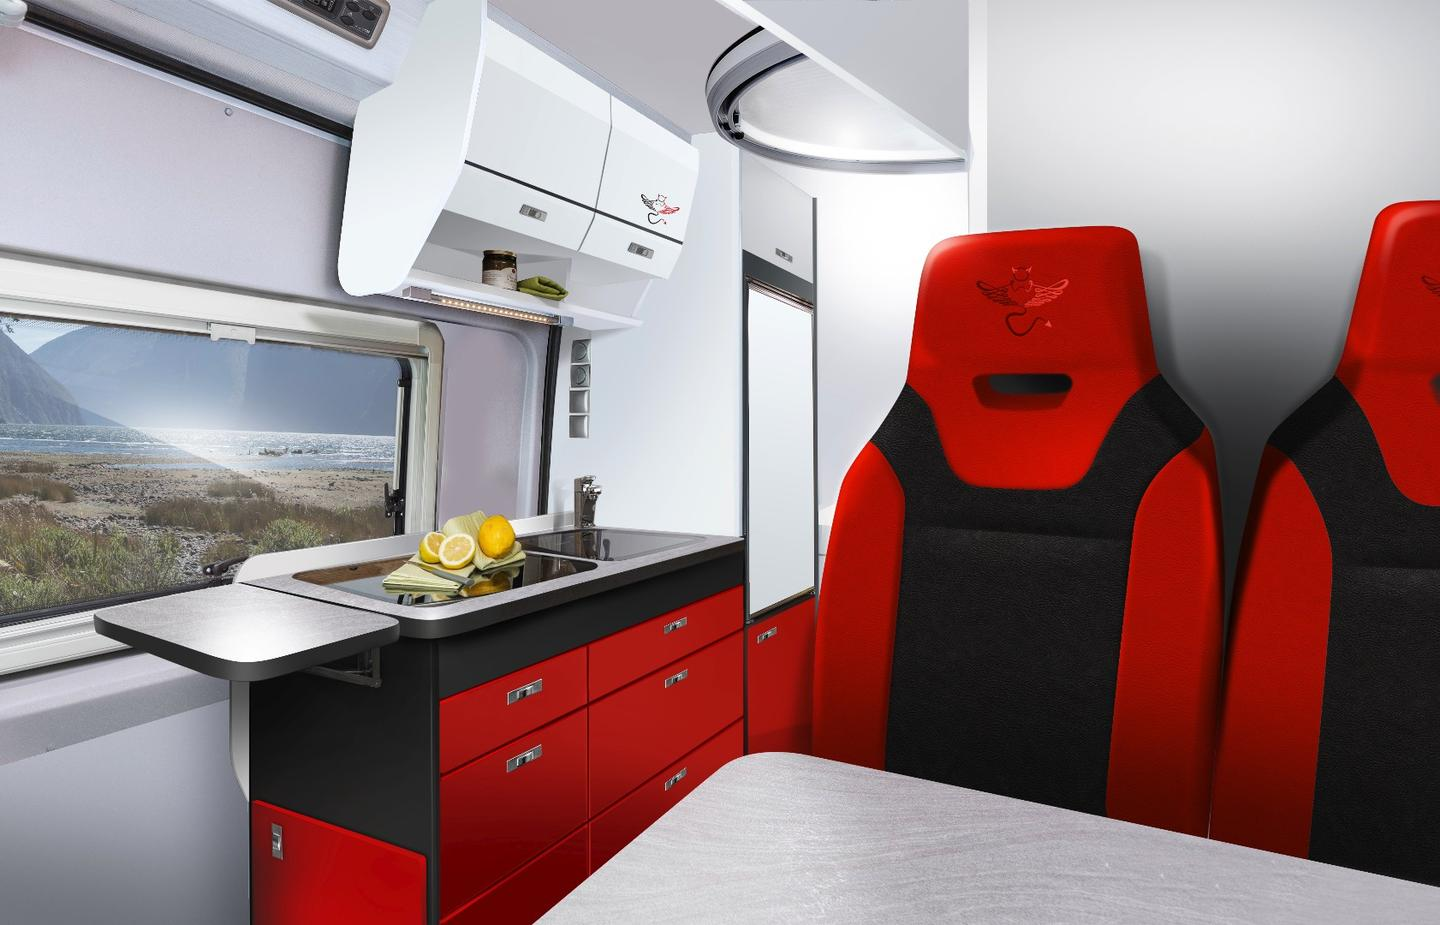 The VWCrafter Saint & Sinnerfeatures an expandablebench and dining table toward the front of the cabin